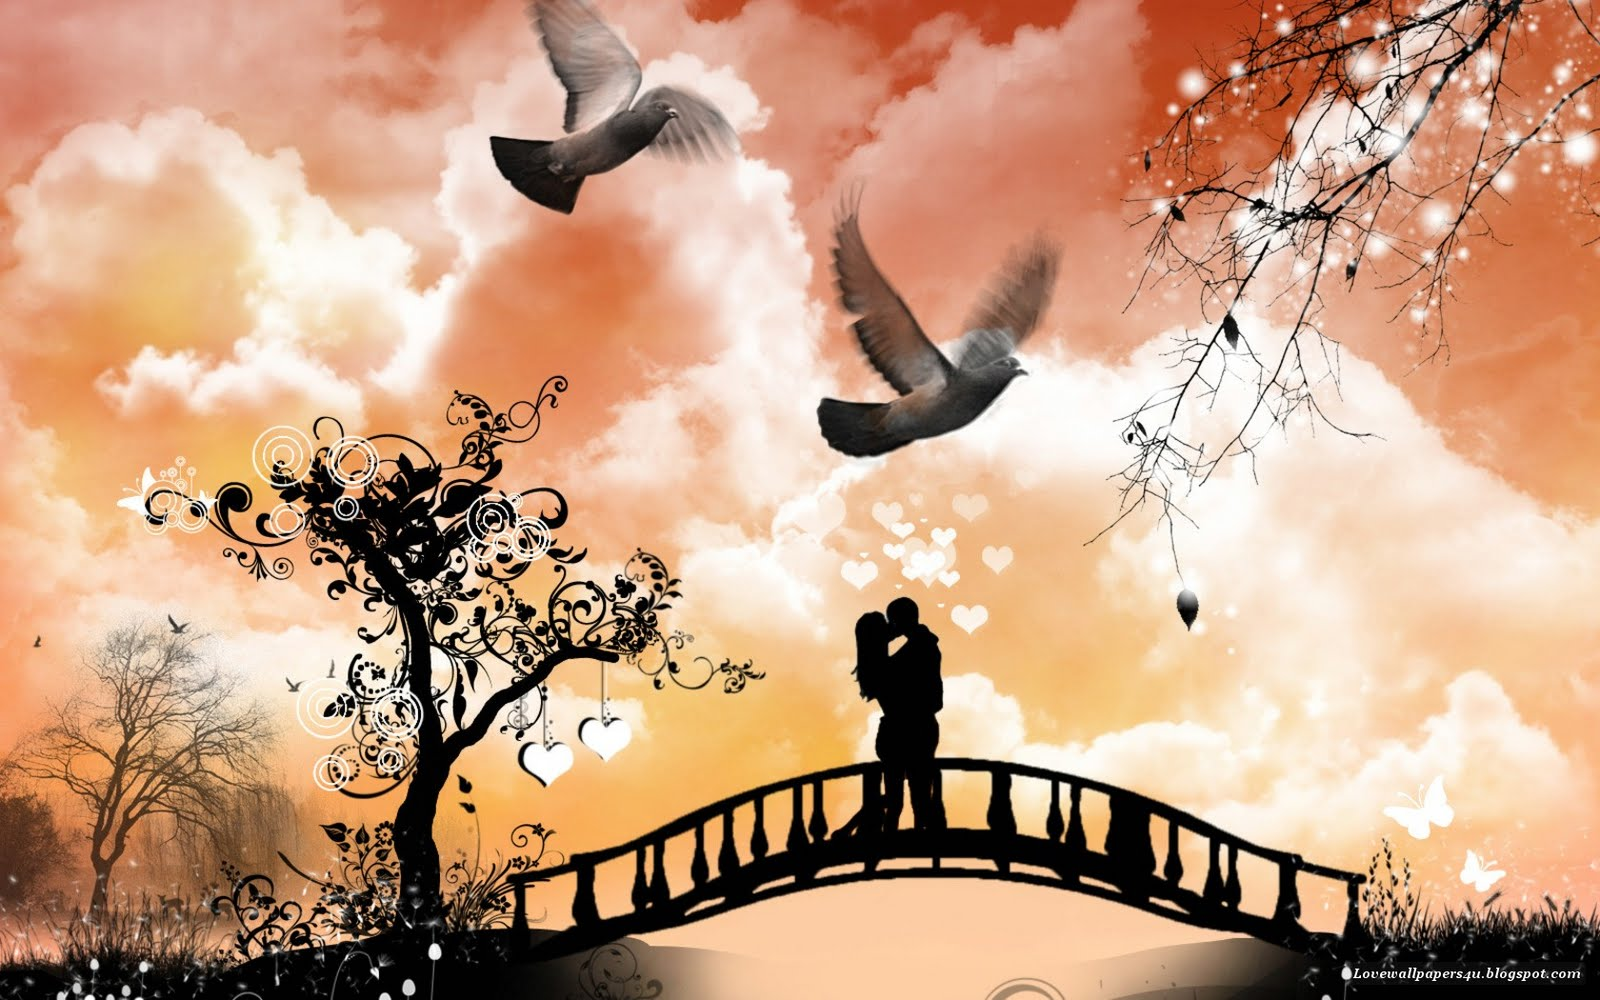 Wallpaper Love Story Hd : iWallpapers: LOVE WALLPAPERS HD